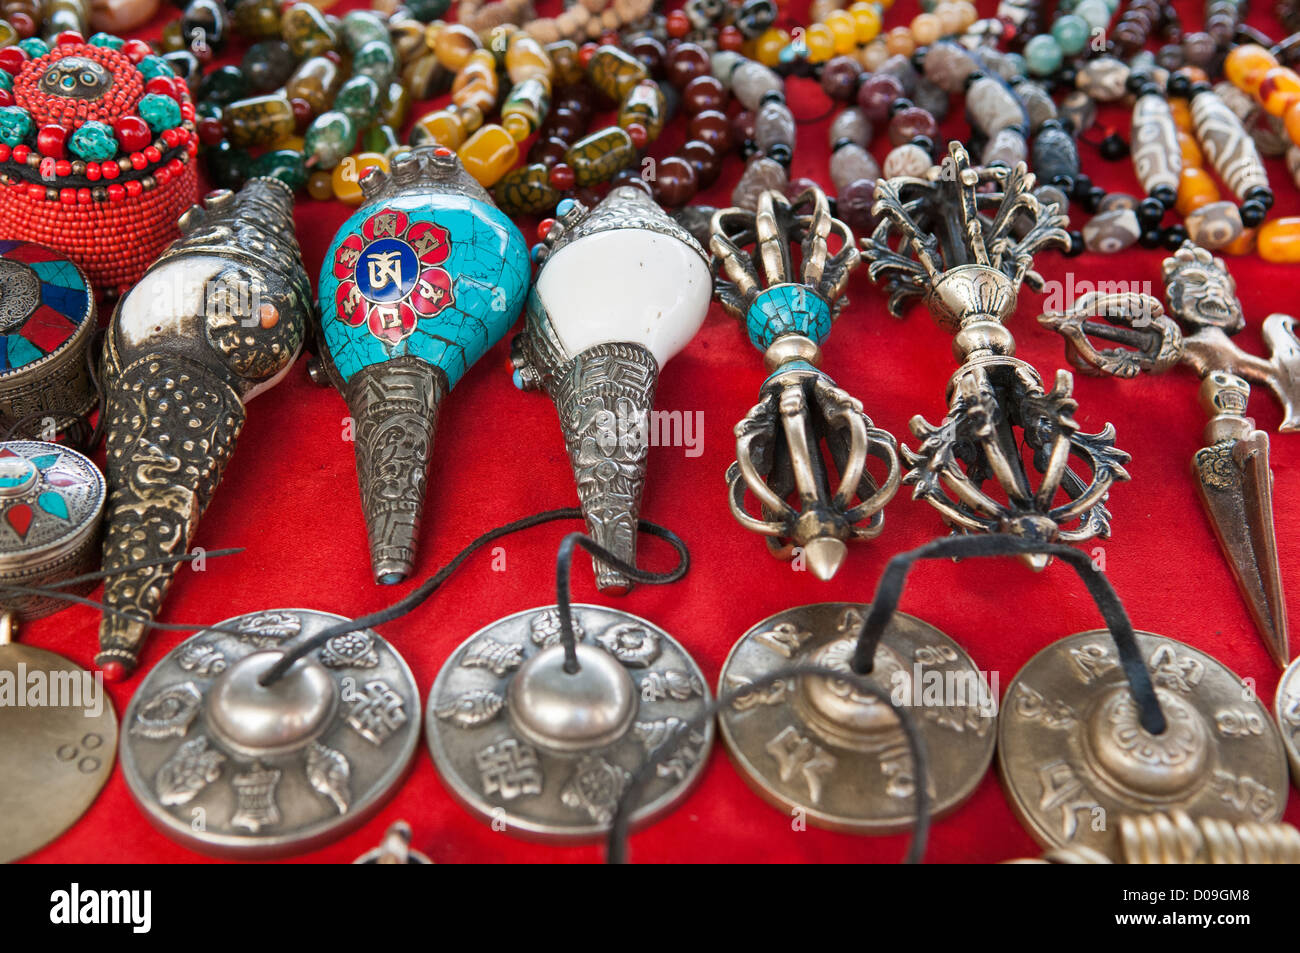 Conch shell horns, beads and religious objects at souvenir stall, Shigatse, Tibet - Stock Image